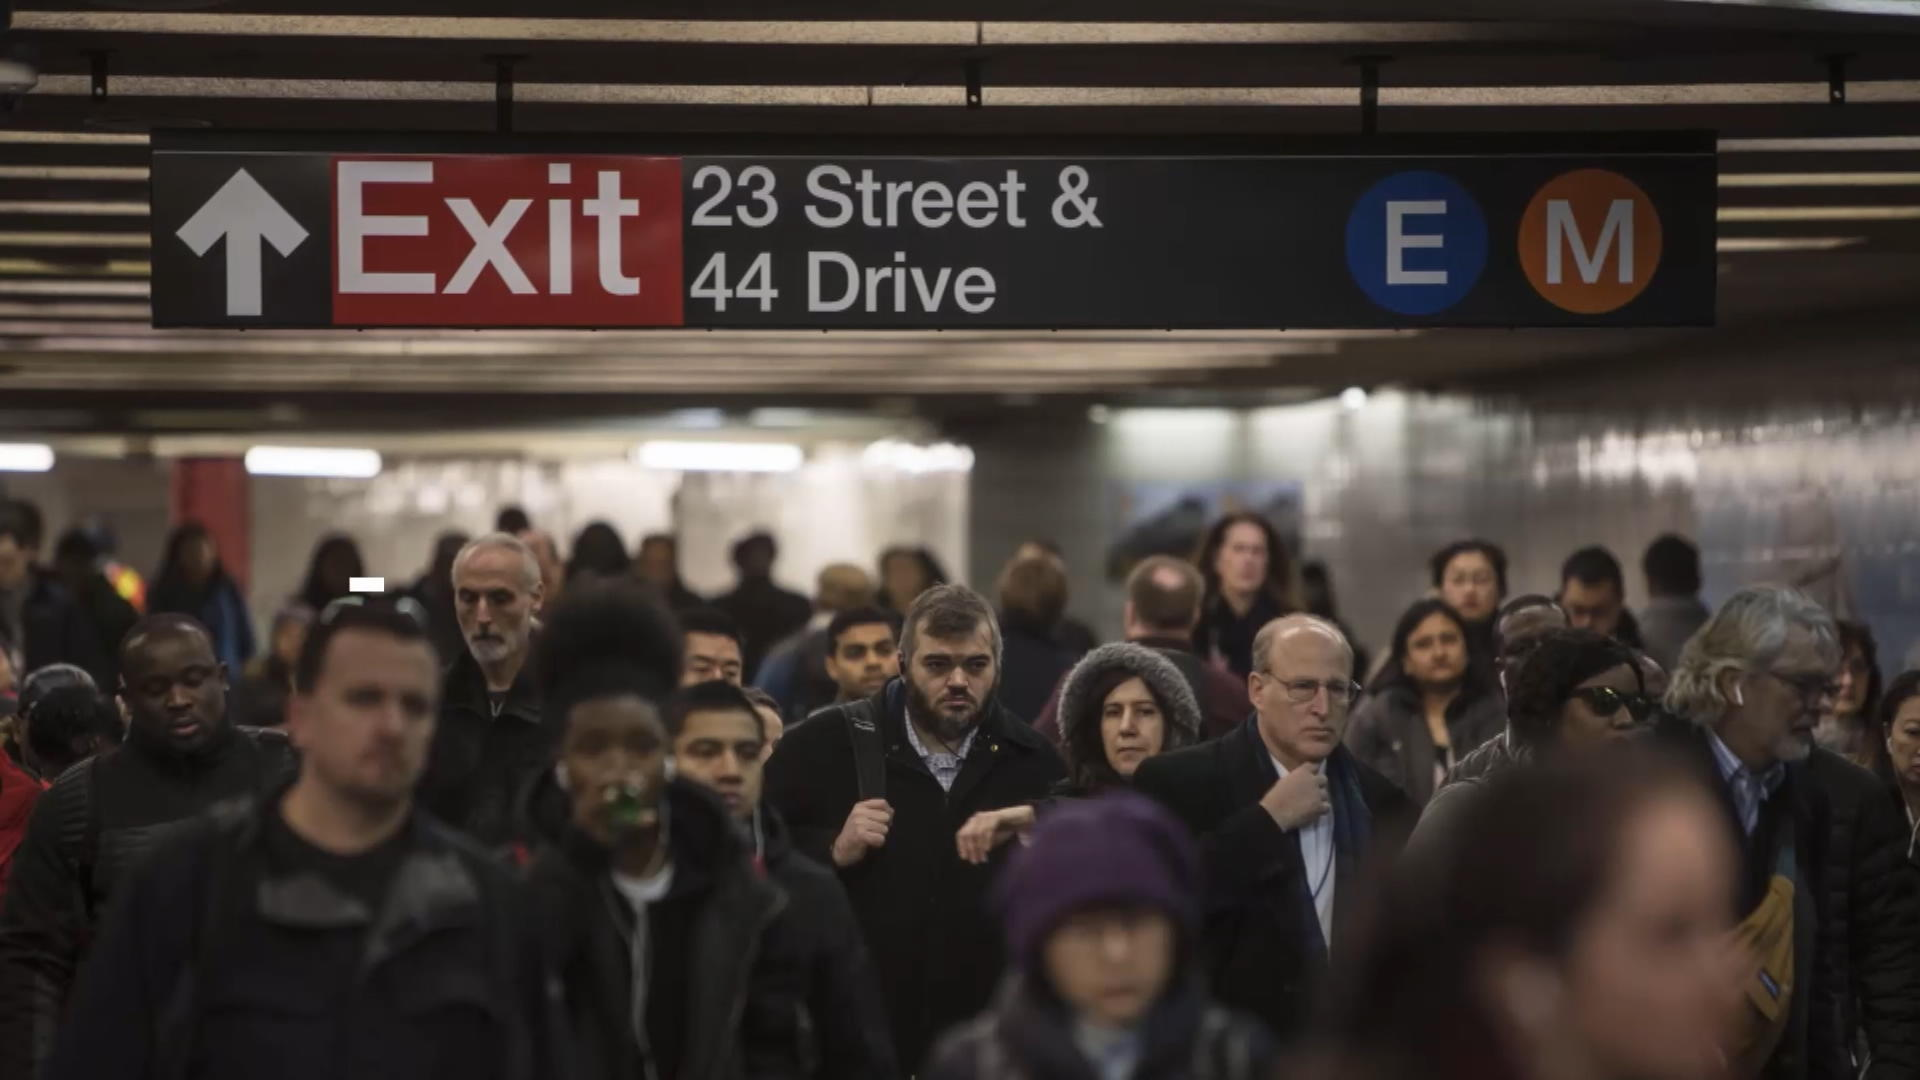 NYC Subway System Heading for 'Death Spiral' Says Chief